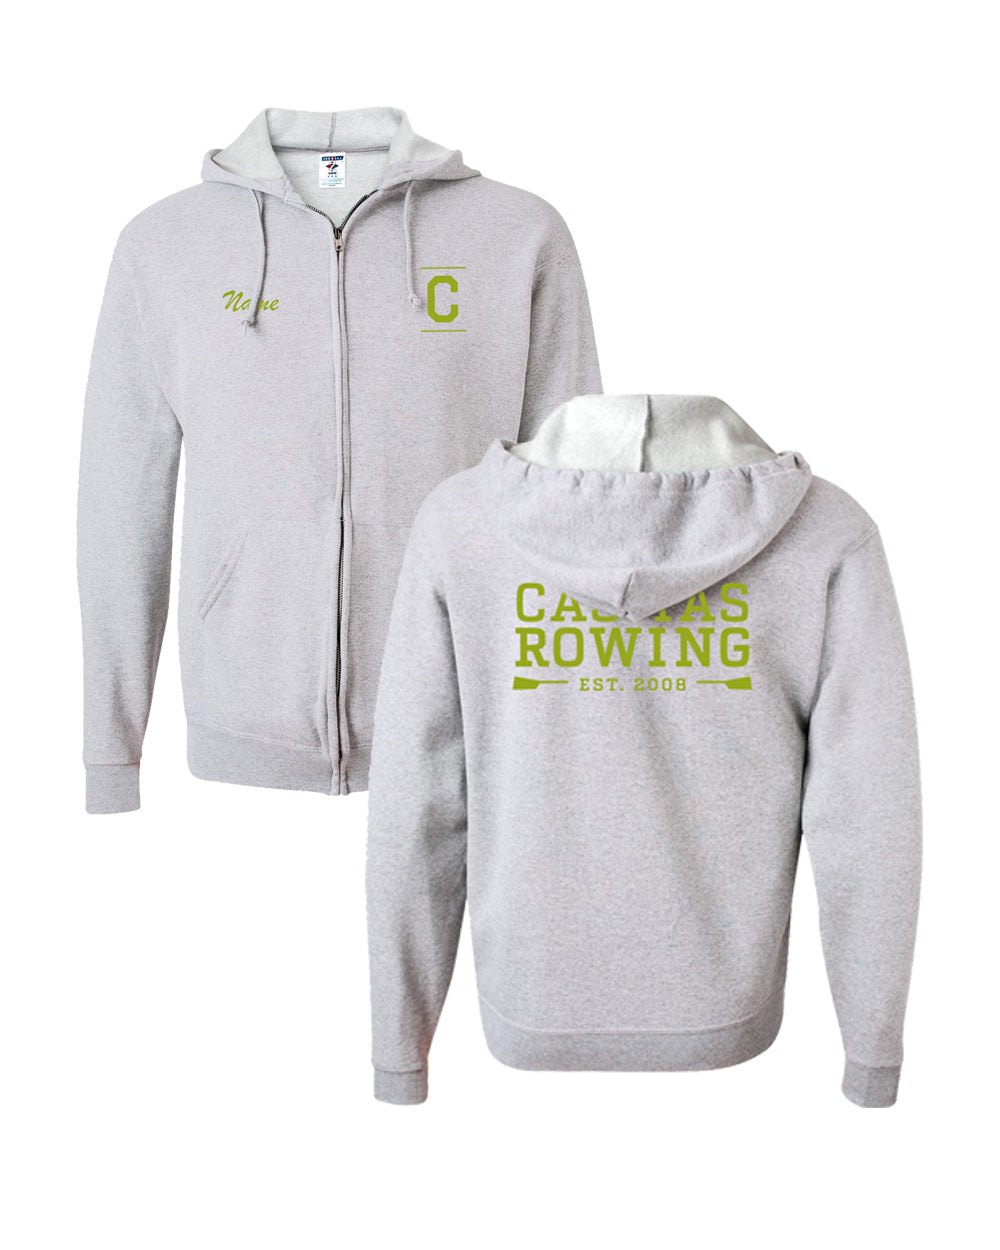 50/50 Hooded Casitas Rowing Pullover Sweatshirt